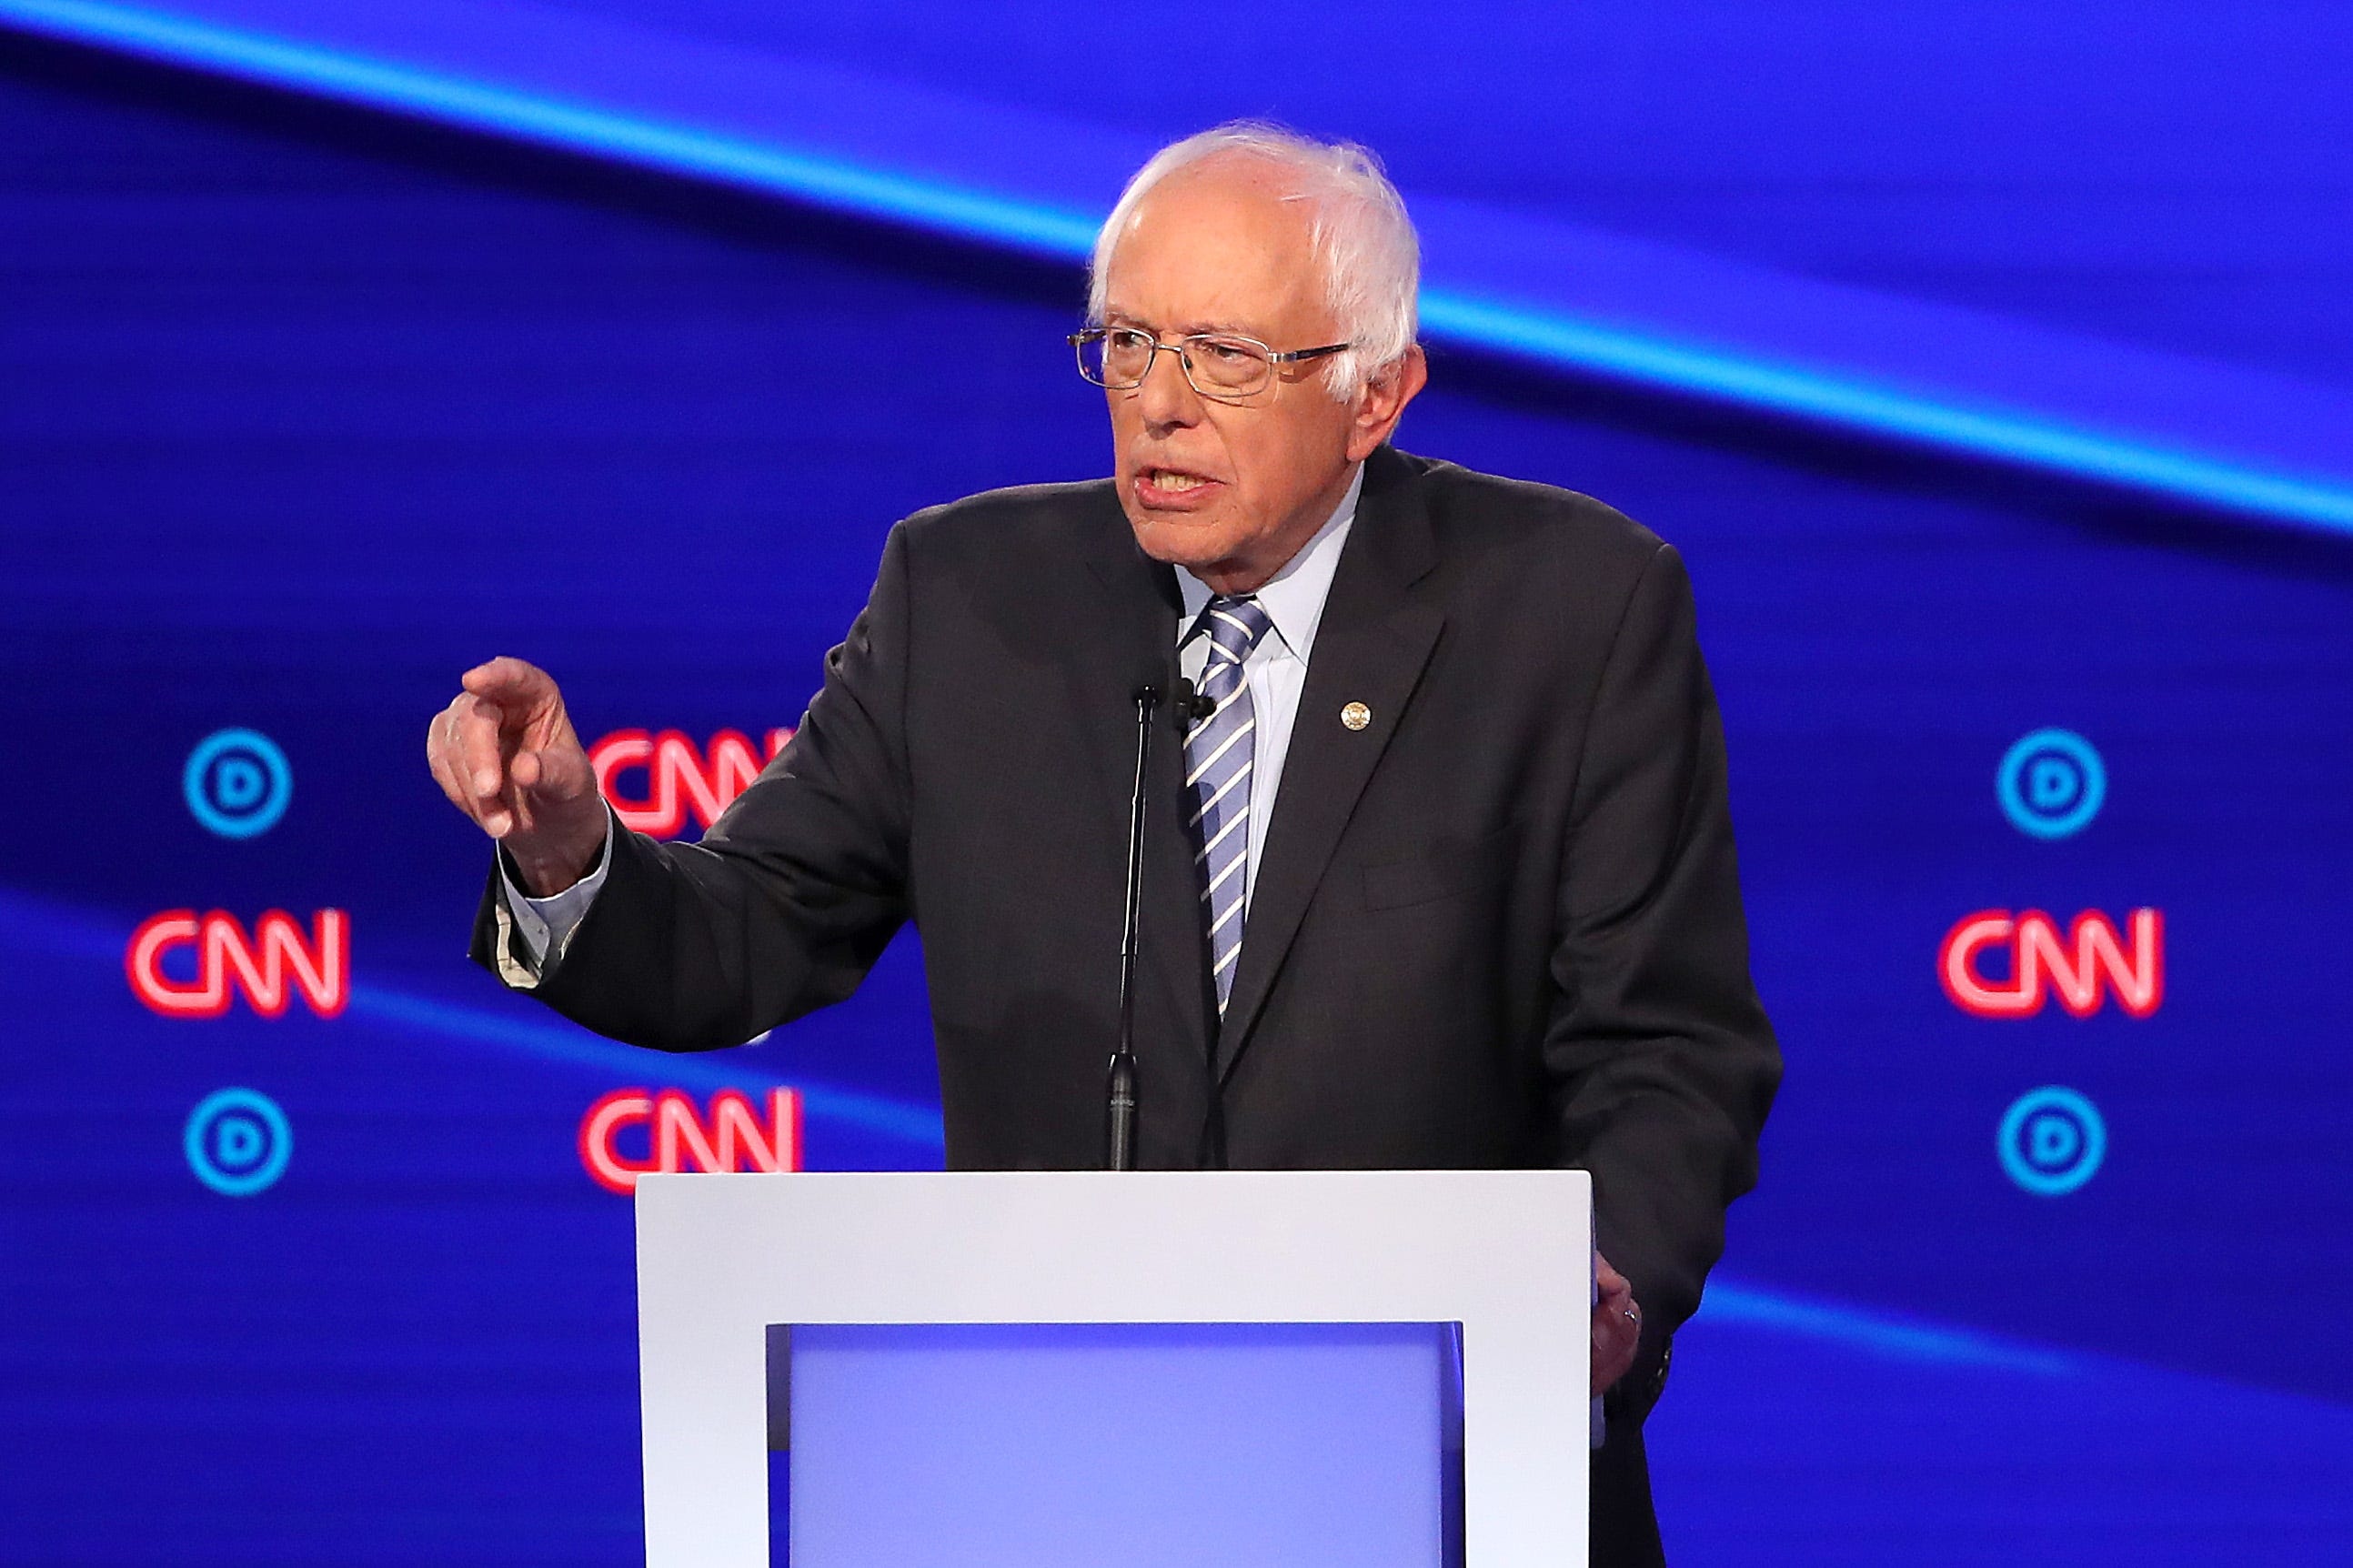 'I'm feeling great': Bernie Sanders reassured voters of his health following heart attack